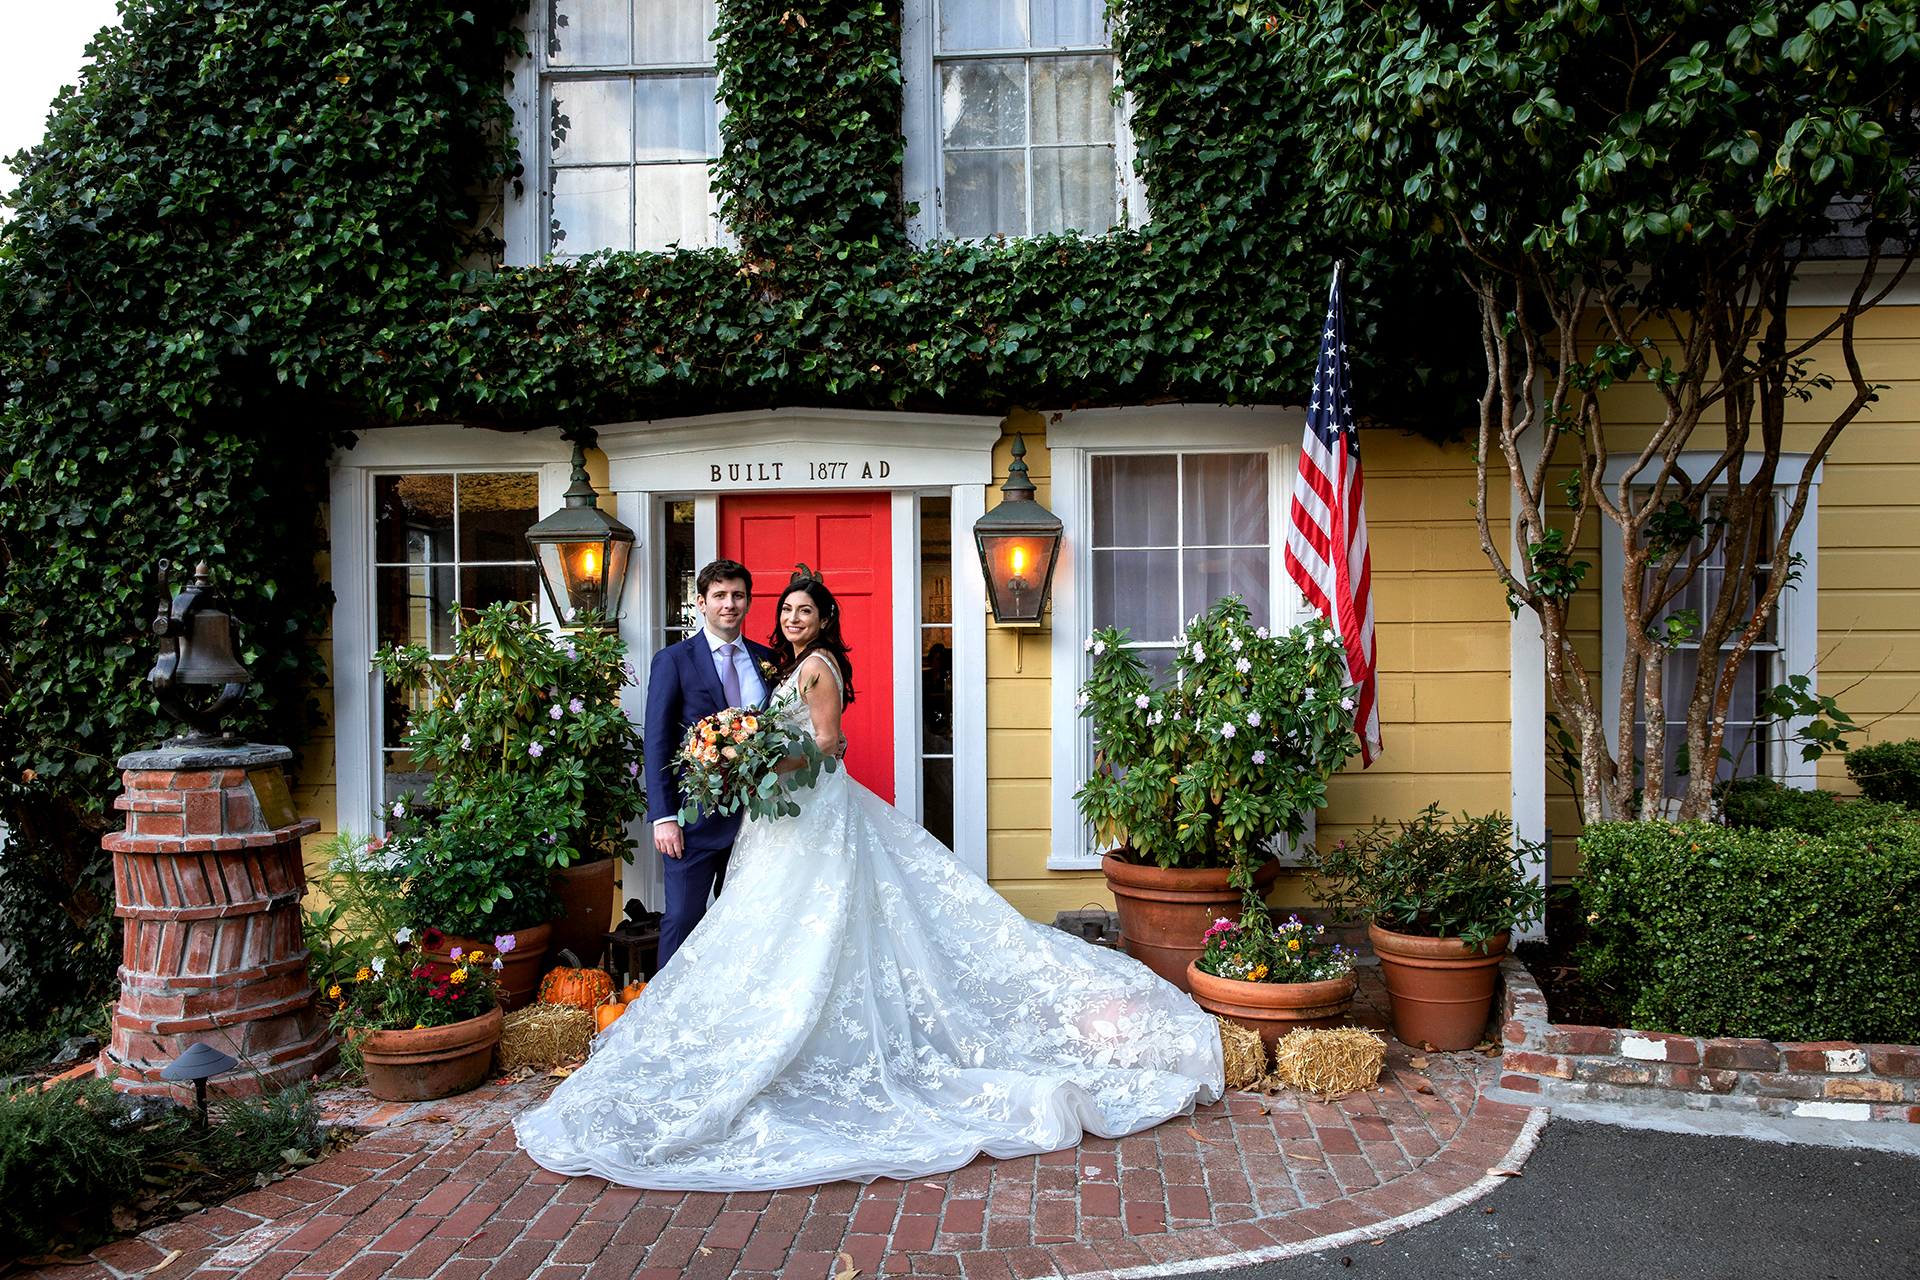 California Historic House Elopement Portraits   Heritage House Resort & Spa's iconic entrance photo session